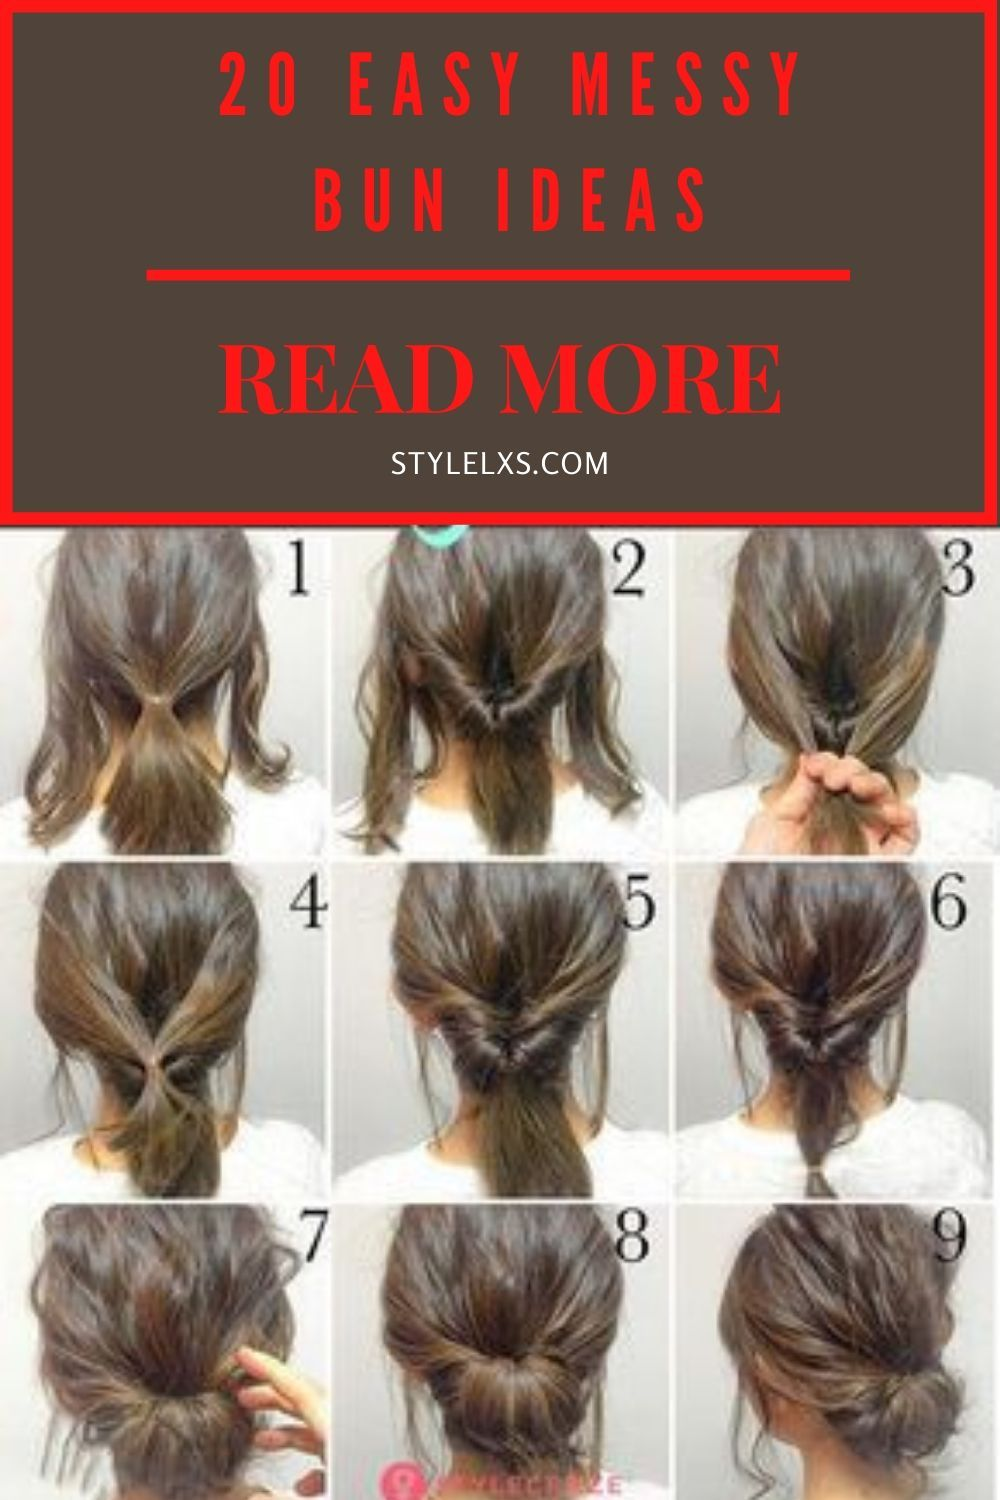 20 Easy Messy Bun Ideas In 2020 Thick Hair Styles Long Hair Styles Hair Styles